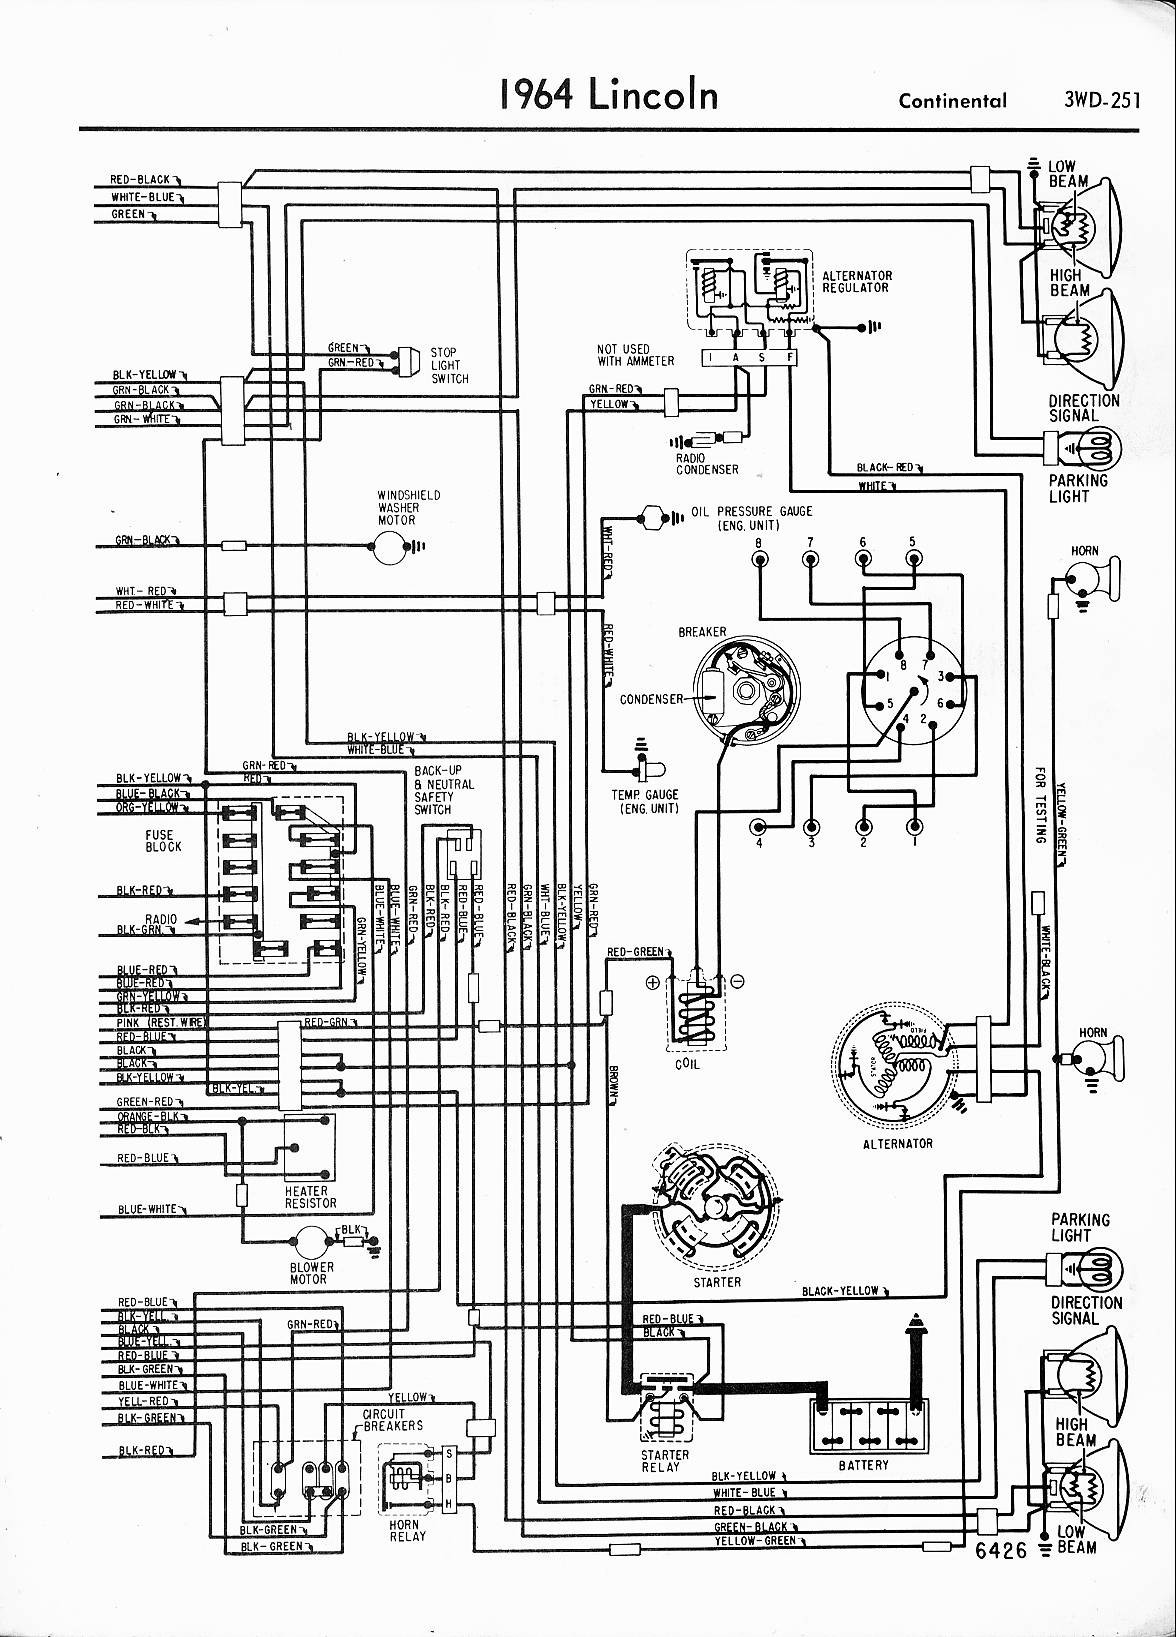 Lincoln town Car Parts Diagram Lincoln Continental Wiring Diagram Lincoln  Continental town Car Of Lincoln town